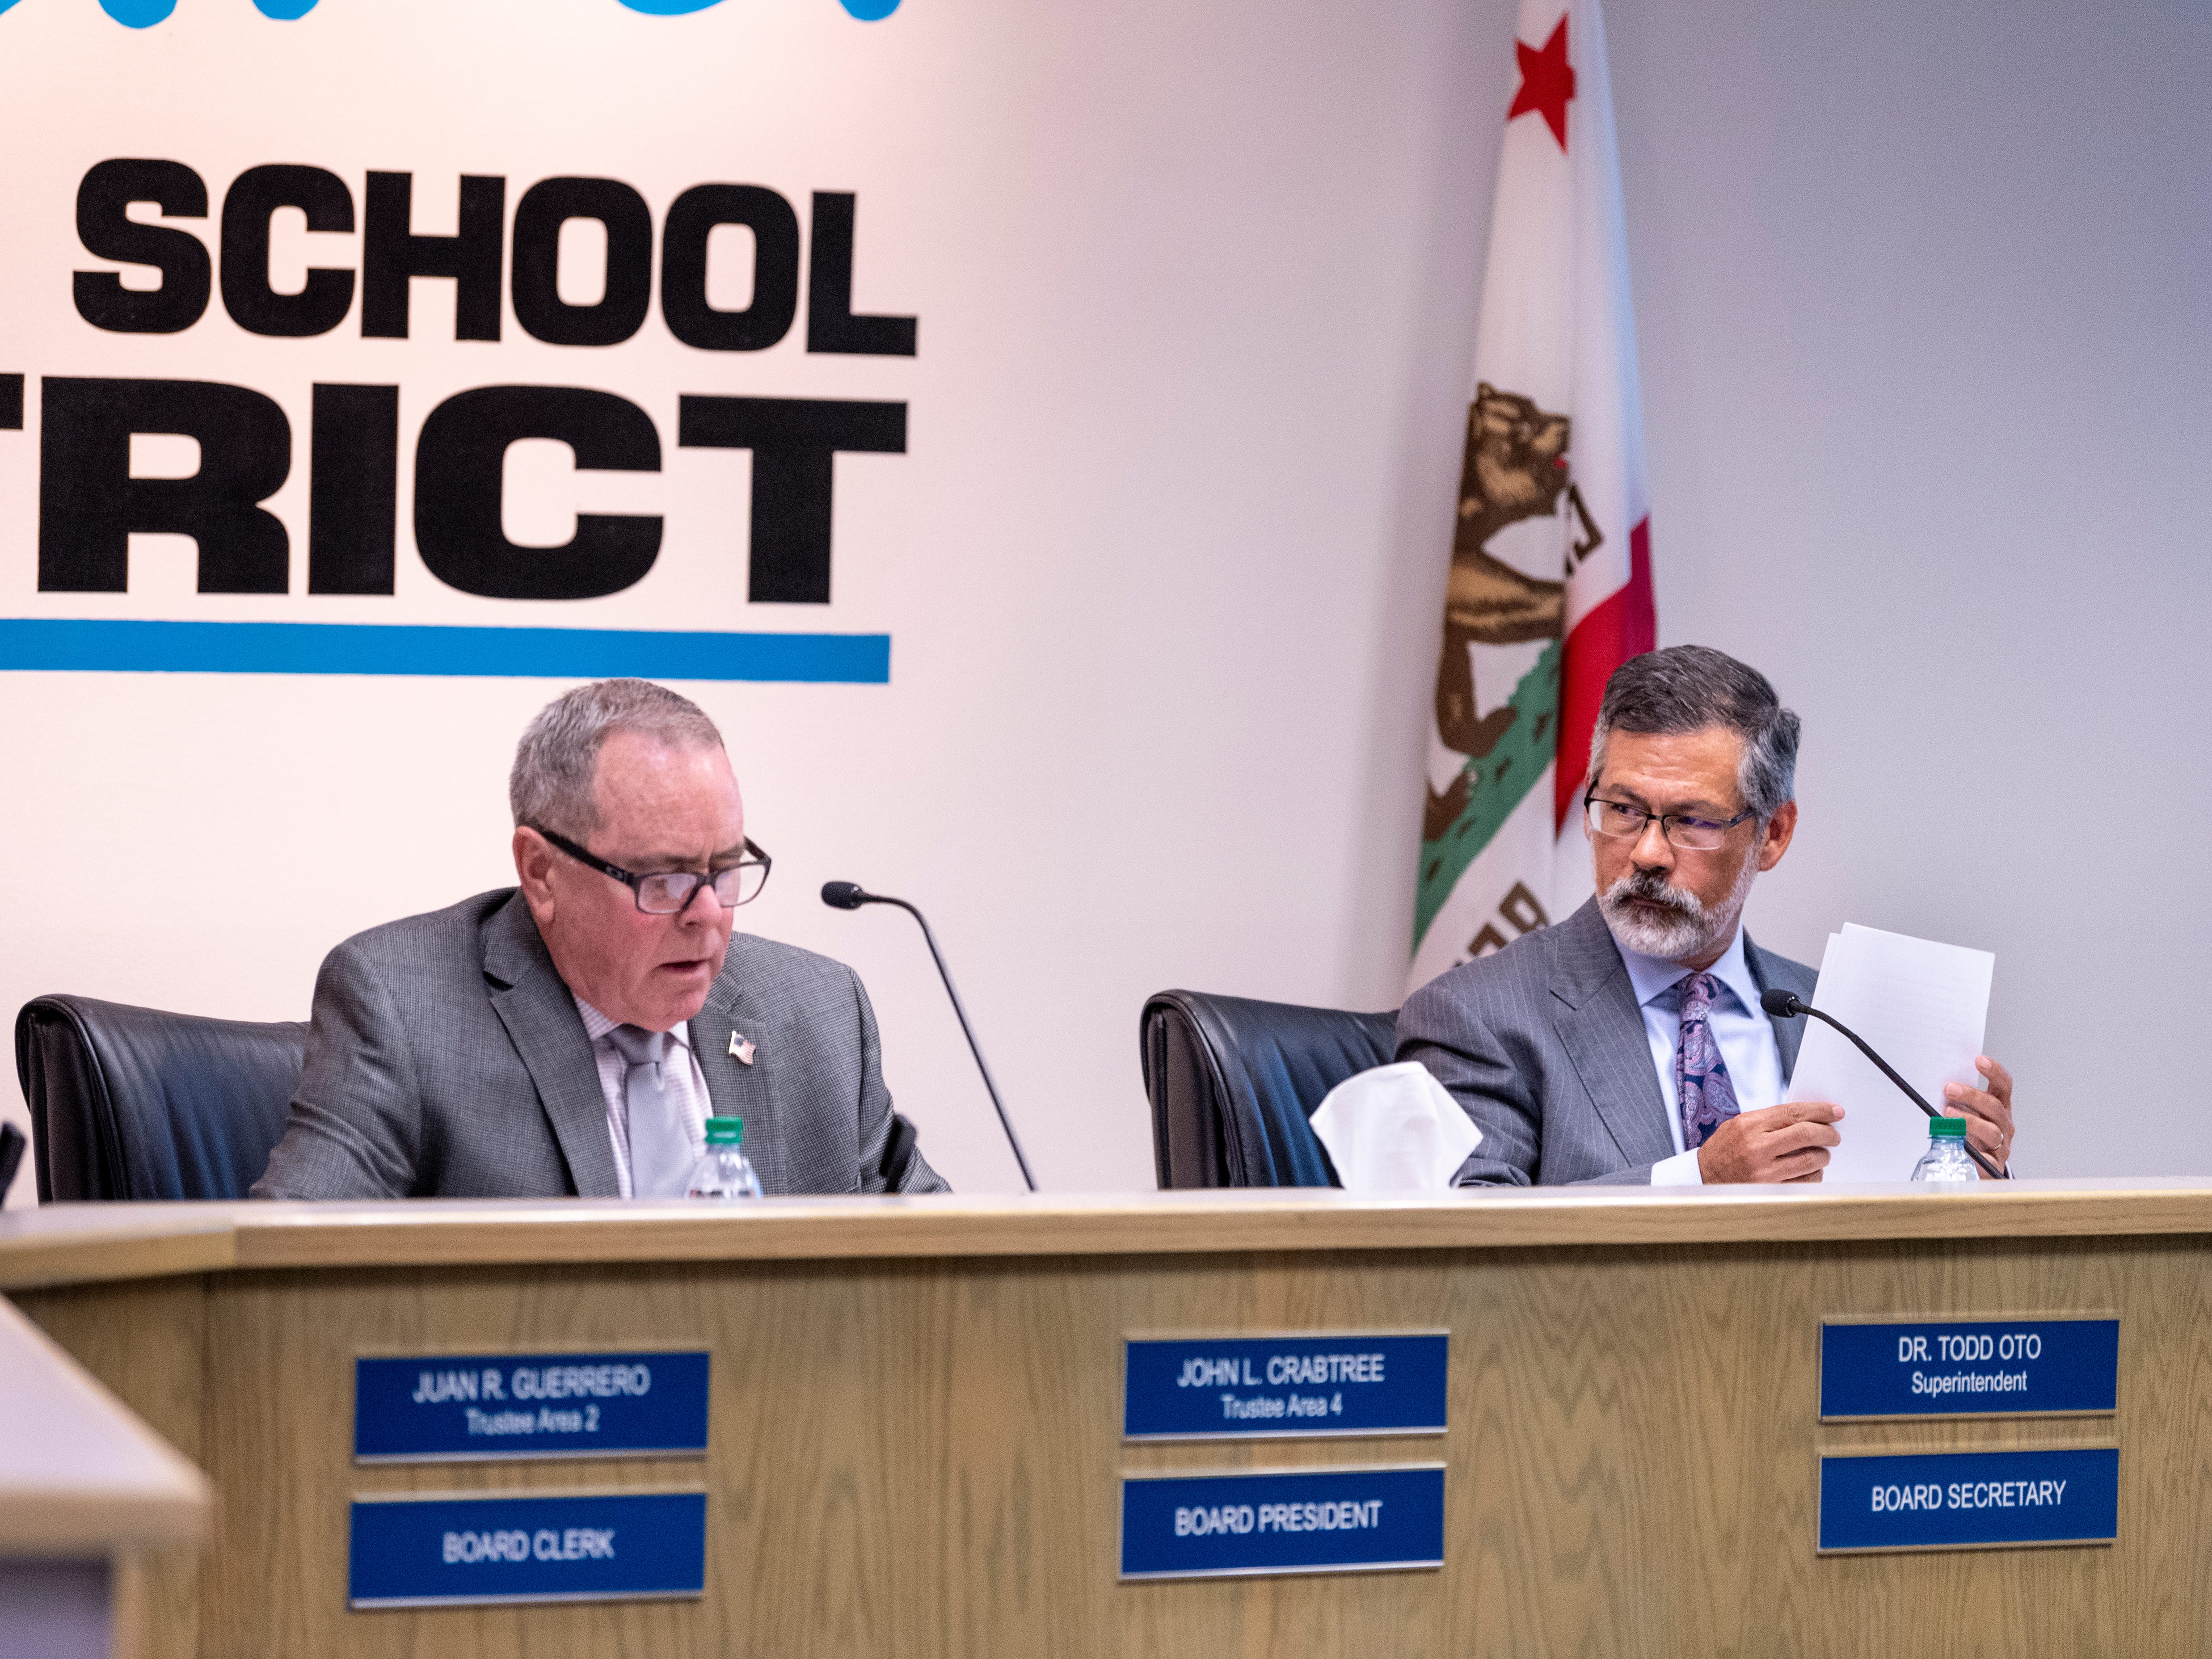 Visalia school board Trustee John Crabtree, left, announces the board had voted to accept the resignation of Superintendent Todd Oto on Tuesday, May 7, 2019.